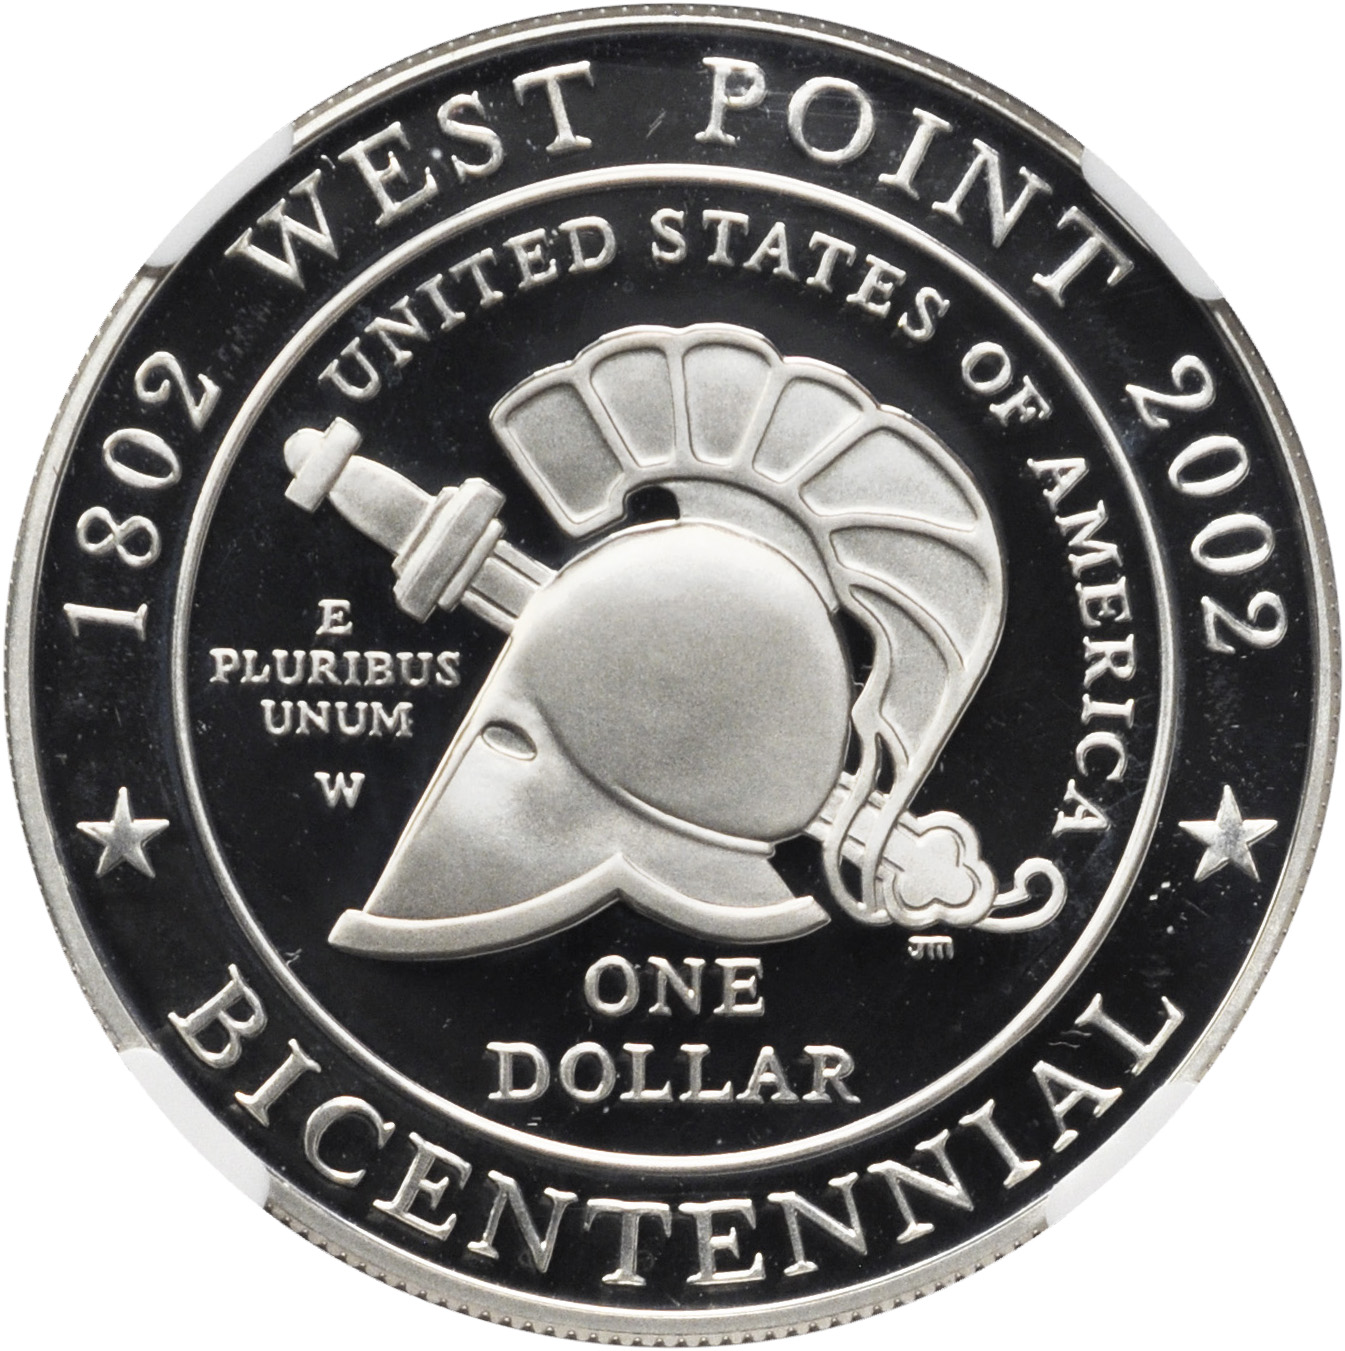 1 COIN 2002-W West Point Bicentennial Commemorative Silver Dollar PCGS MS69